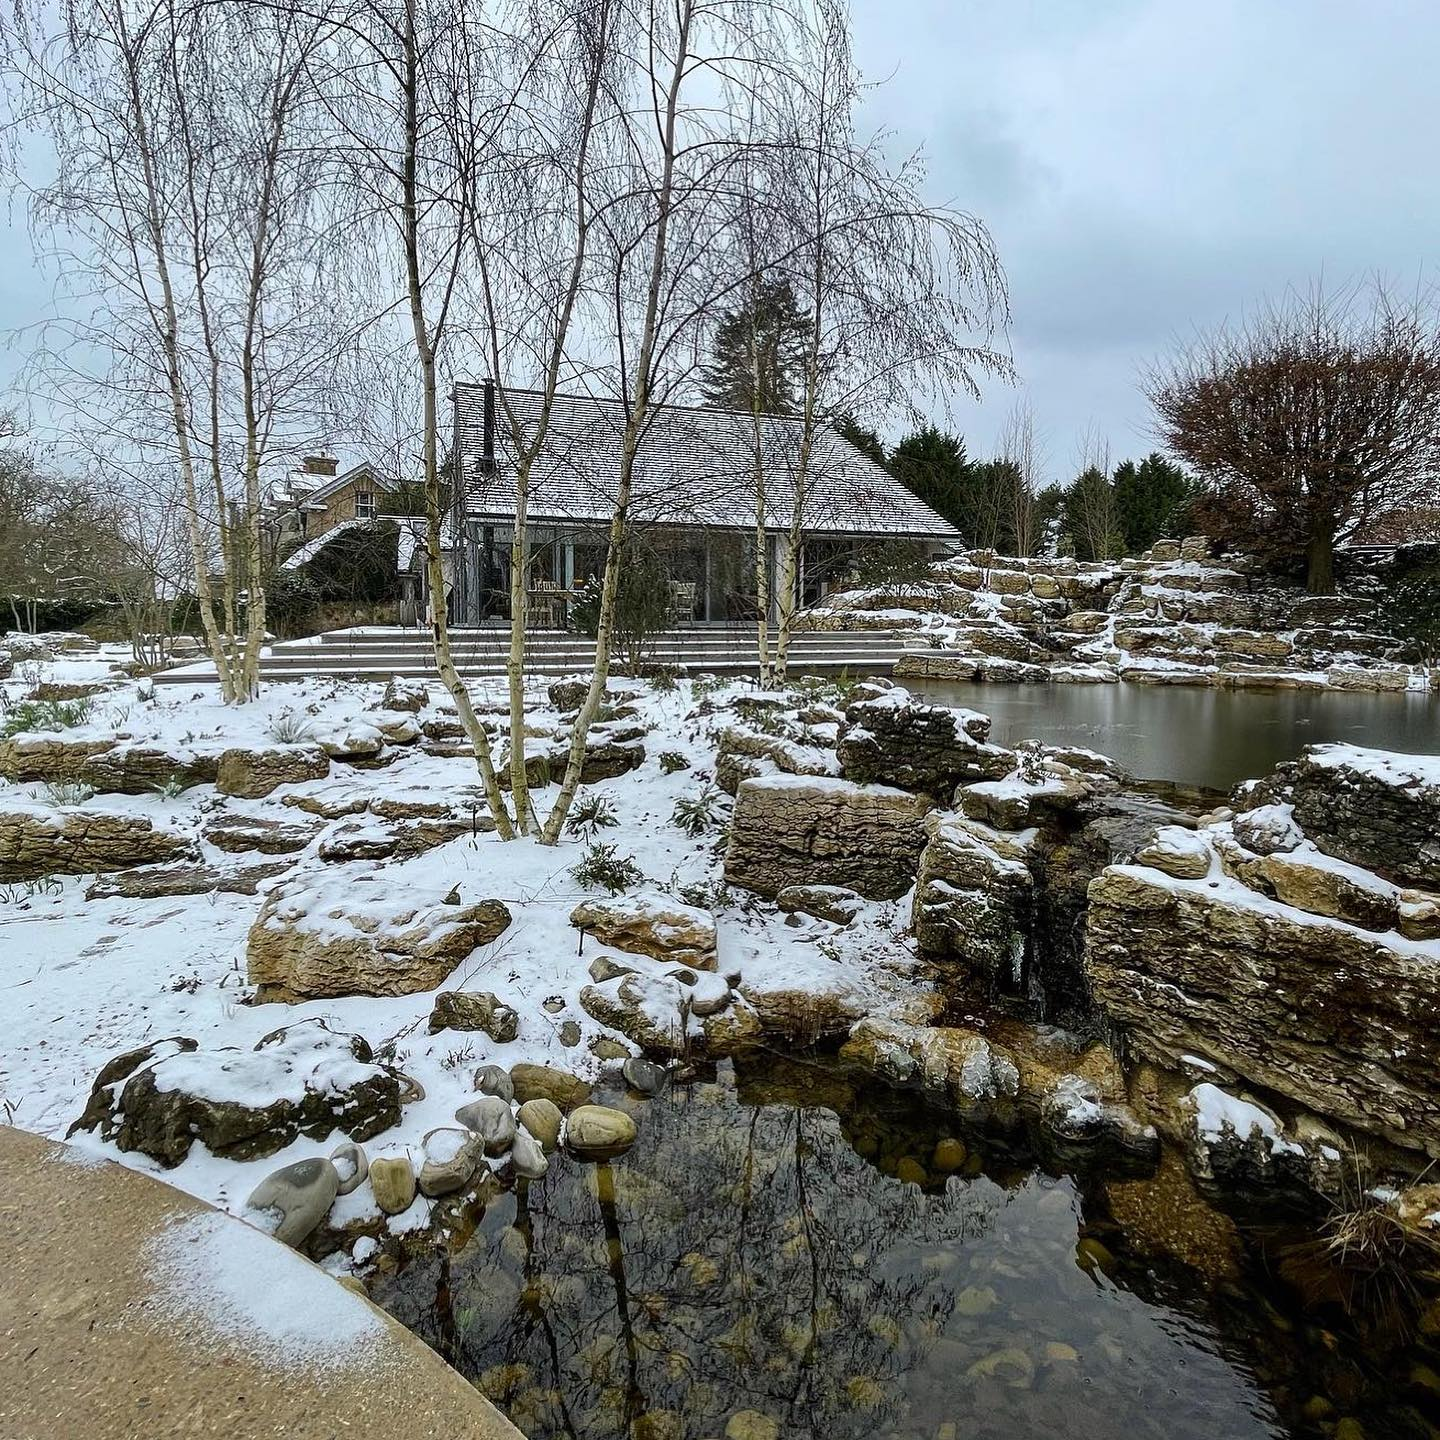 Popped in to see our Surrey project in the snow today. Winter wonderland! Waterfalls look just as magical covered  in snow @waterartisans @belderboslandscapes